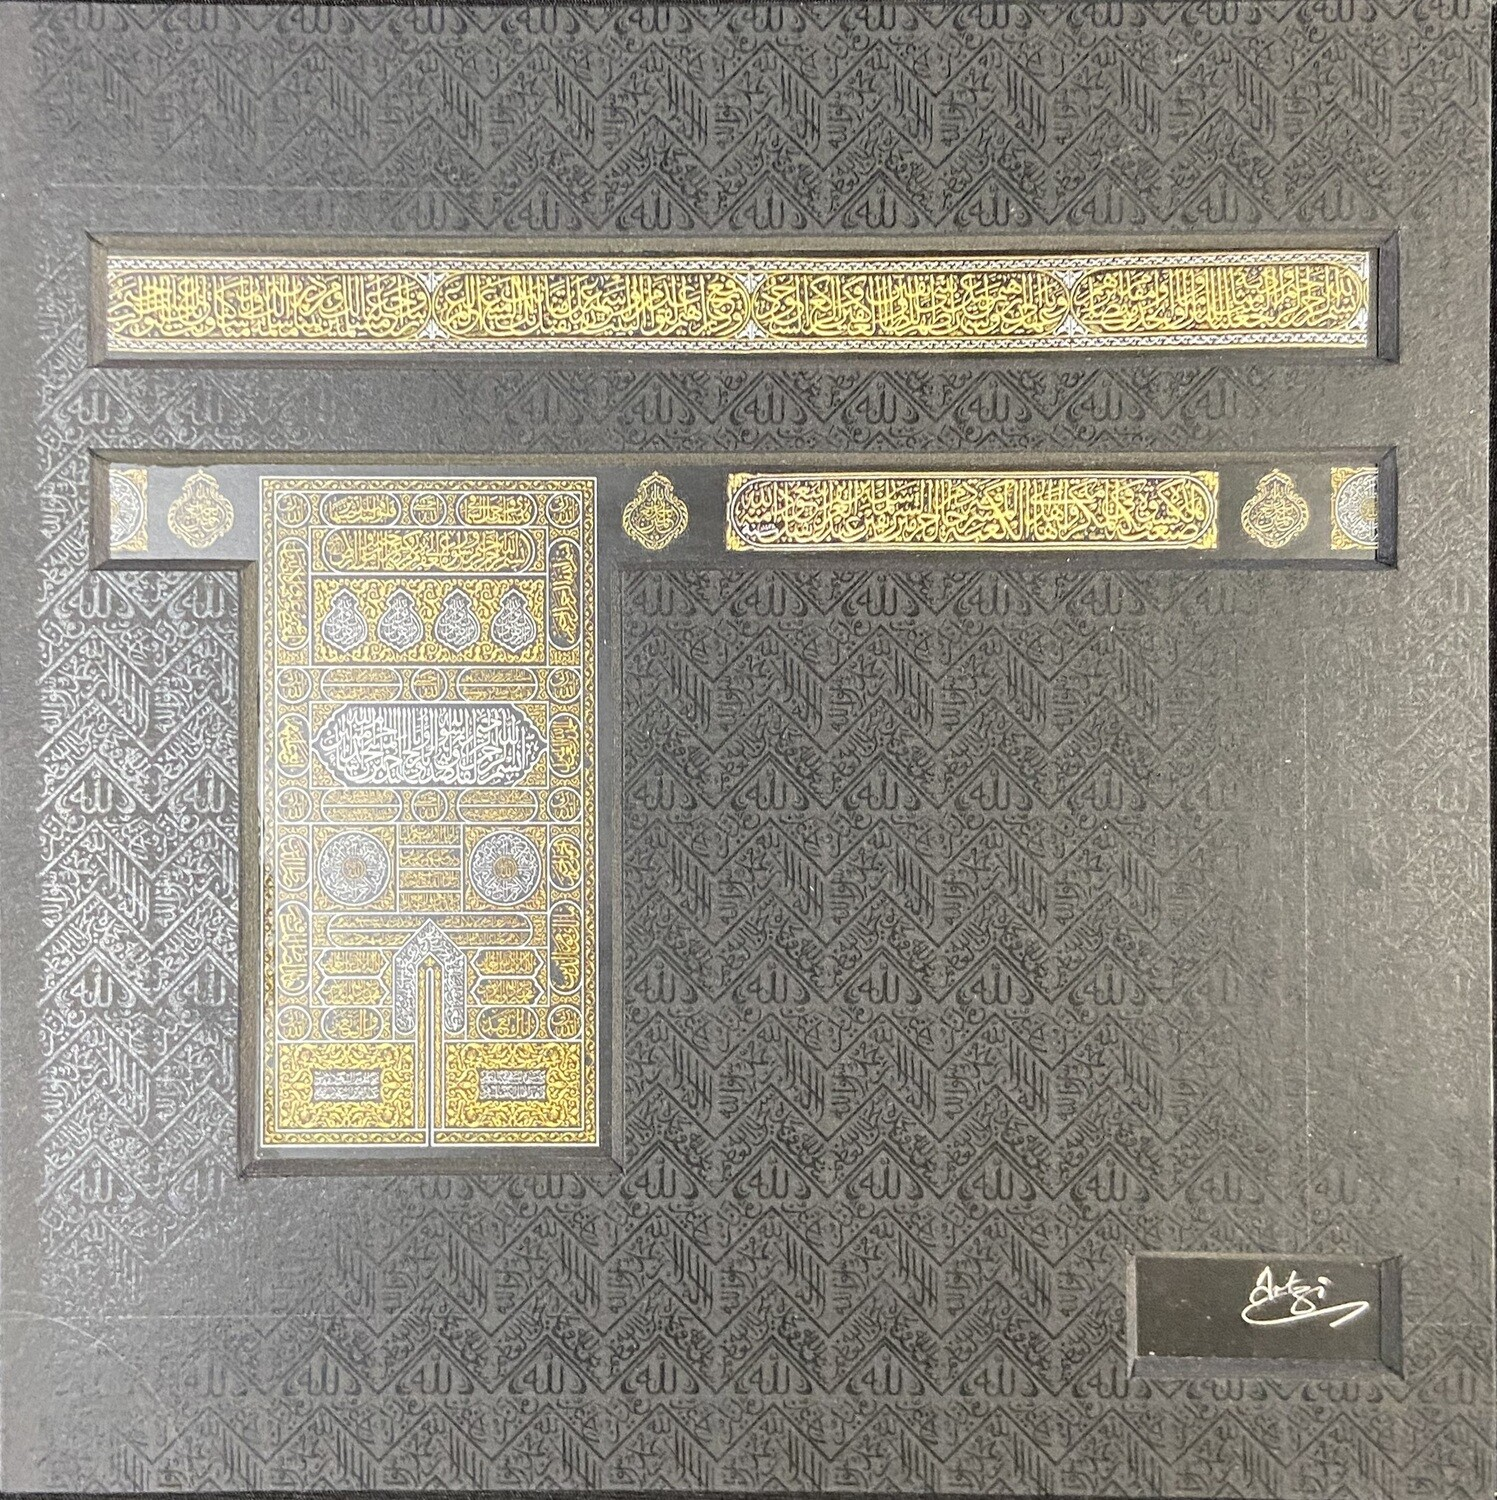 The Majestic Kaaba 3D Greeting Card